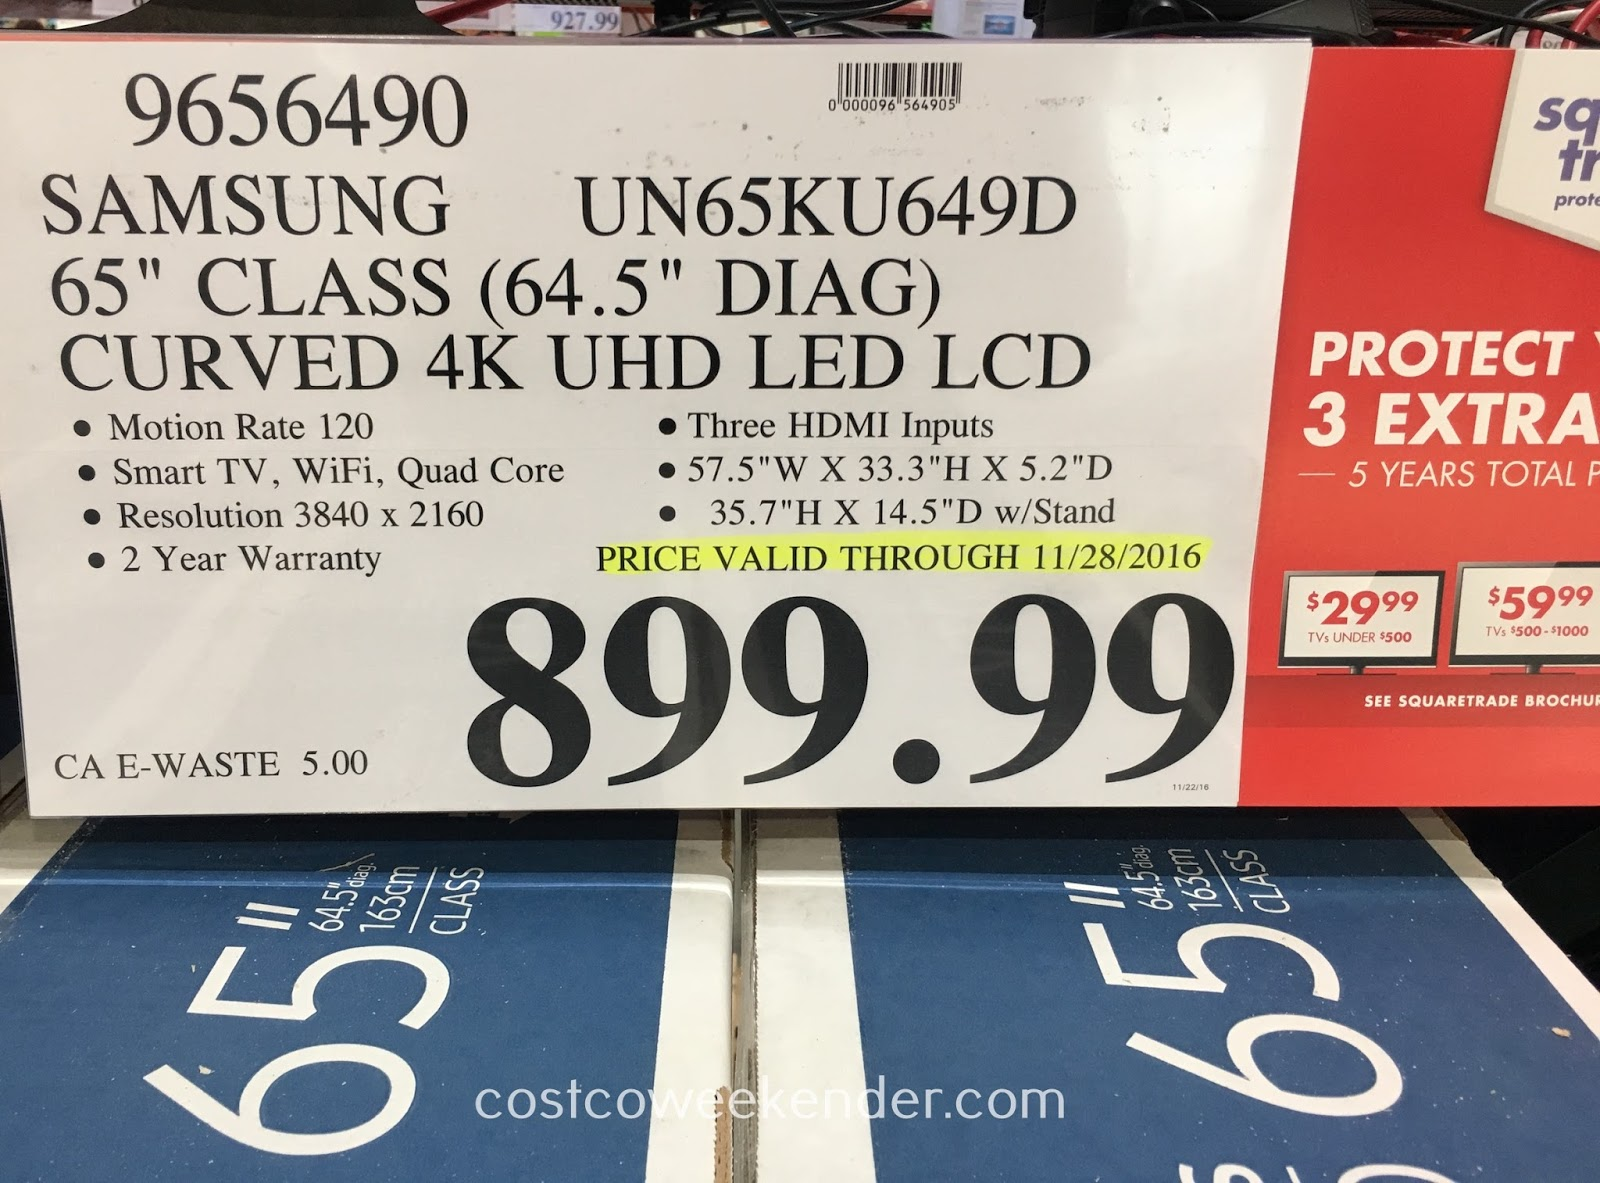 Costco 9656490 - Deal for the Samsung UN65KU649 65 inch curved tv at Costco